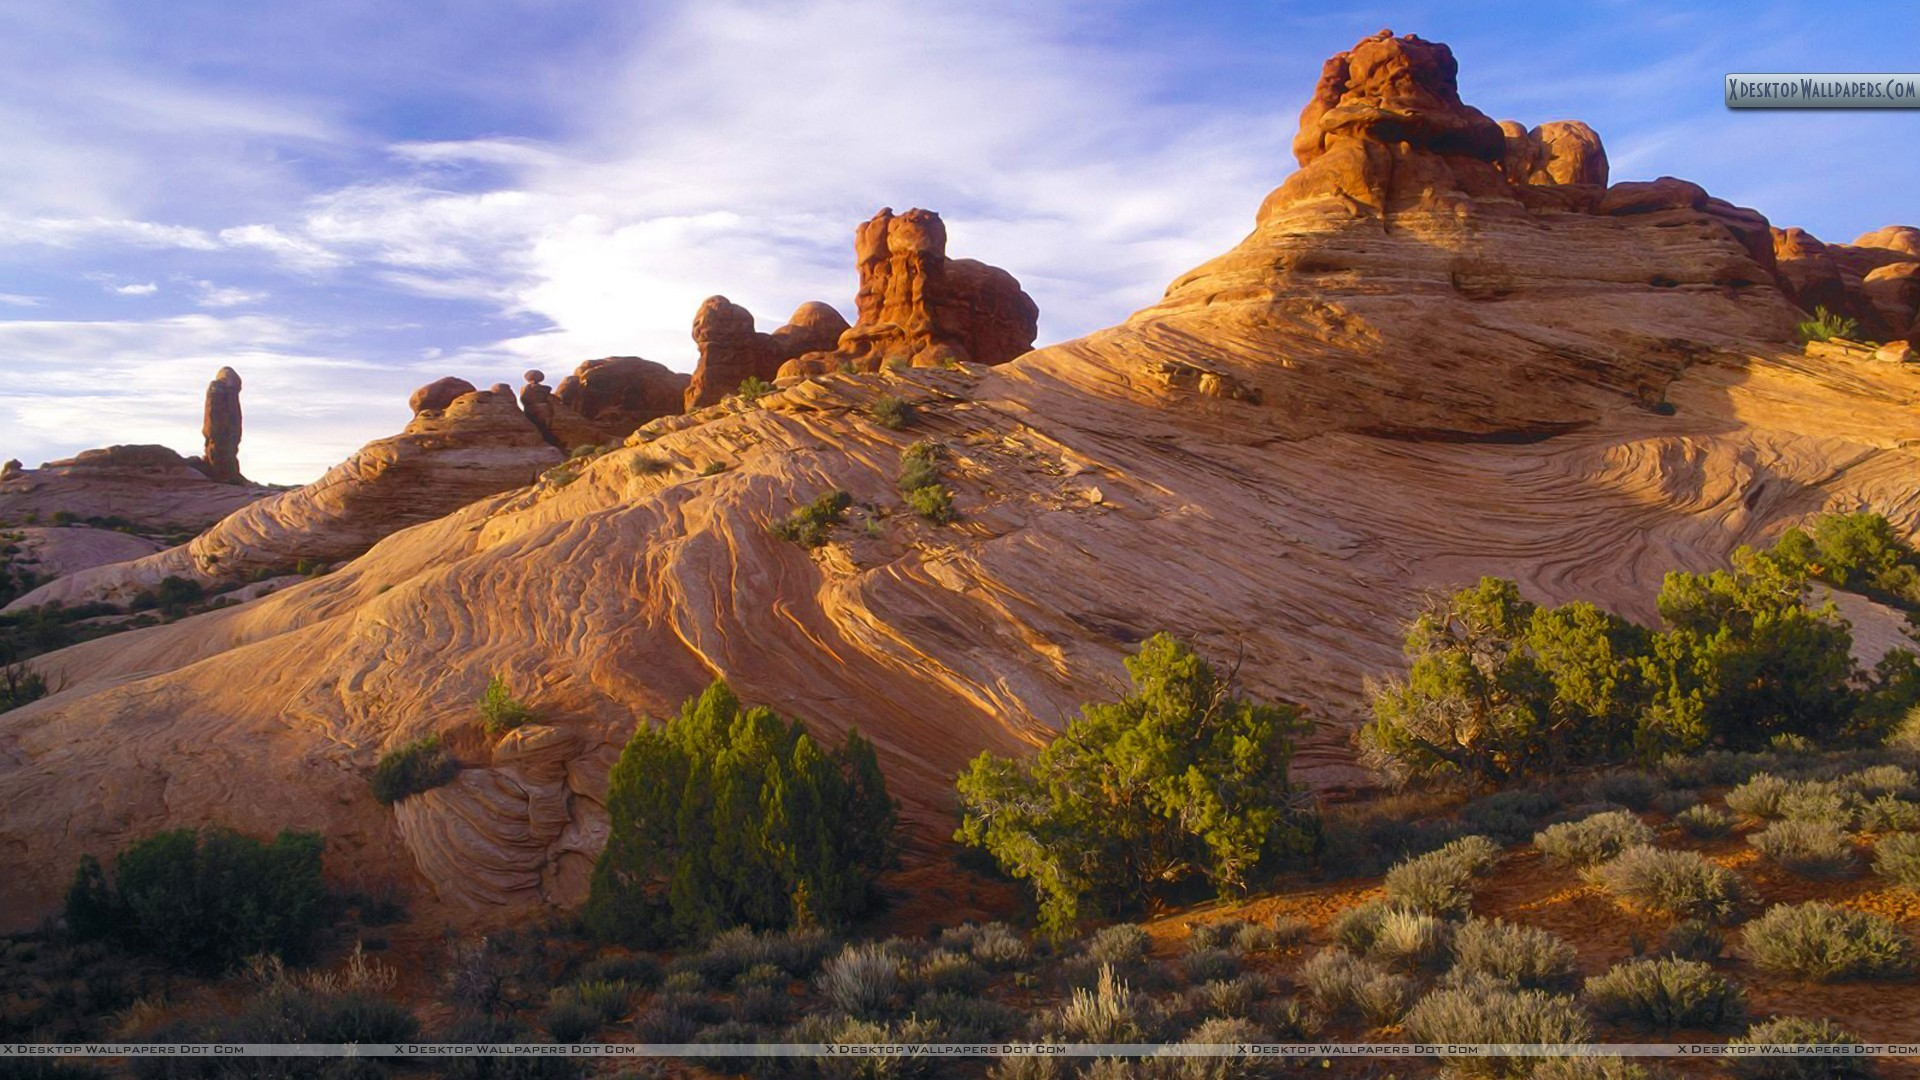 1920x1080 Wallpapers Hd Backgrounds Images Pics Photos: Arches National Park Wallpaper (55+ Images